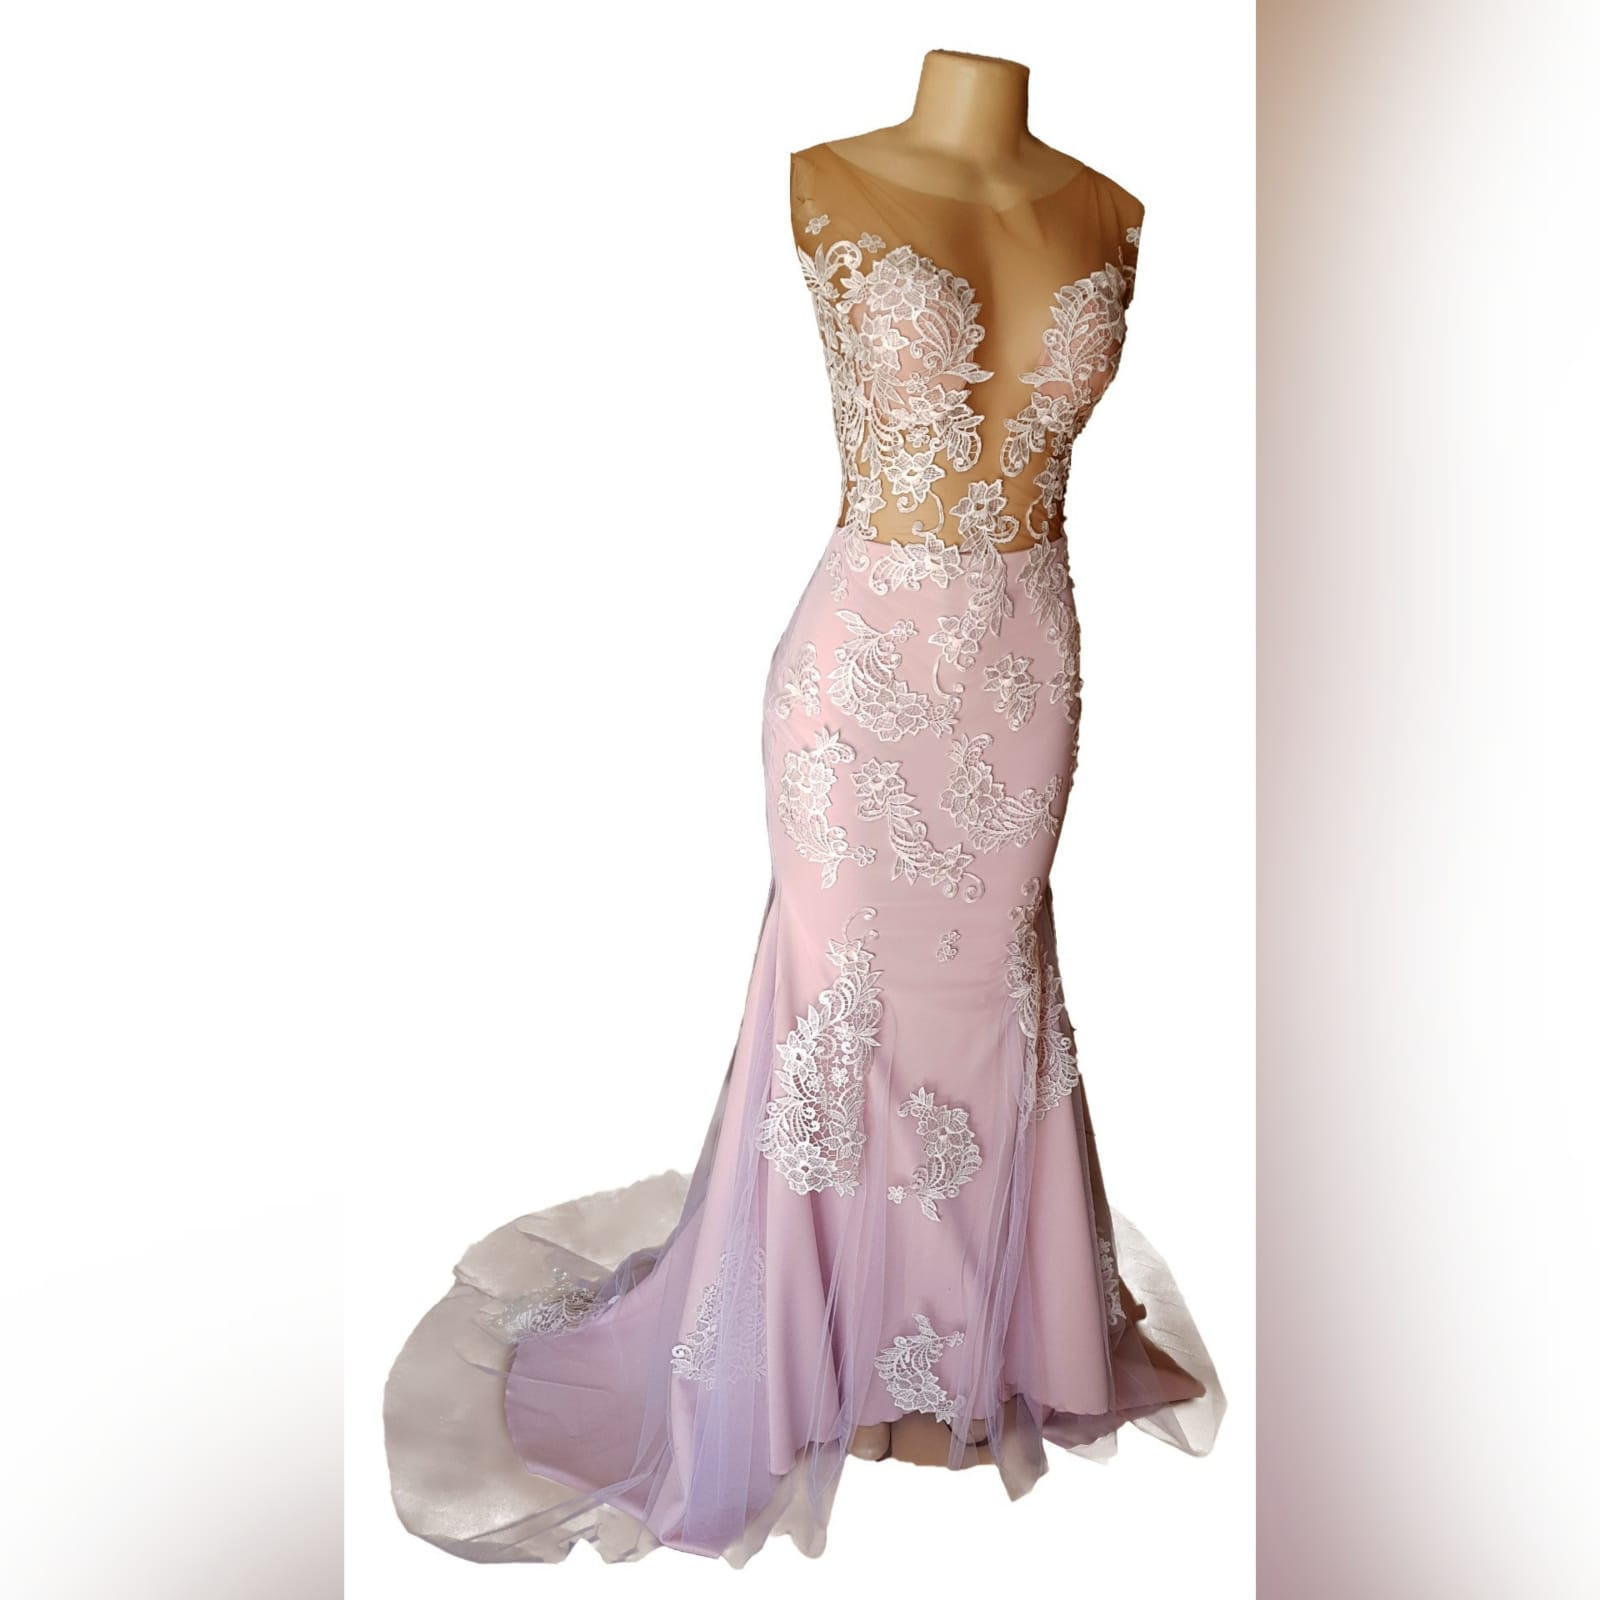 Pink and white lace soft mermaid prom dress 6 pink and white lace soft mermaid prom dress with an illusion bodice detailed with lace, an illusion open back. Bottom with an overlayer of tulle detailed with lace and a train.